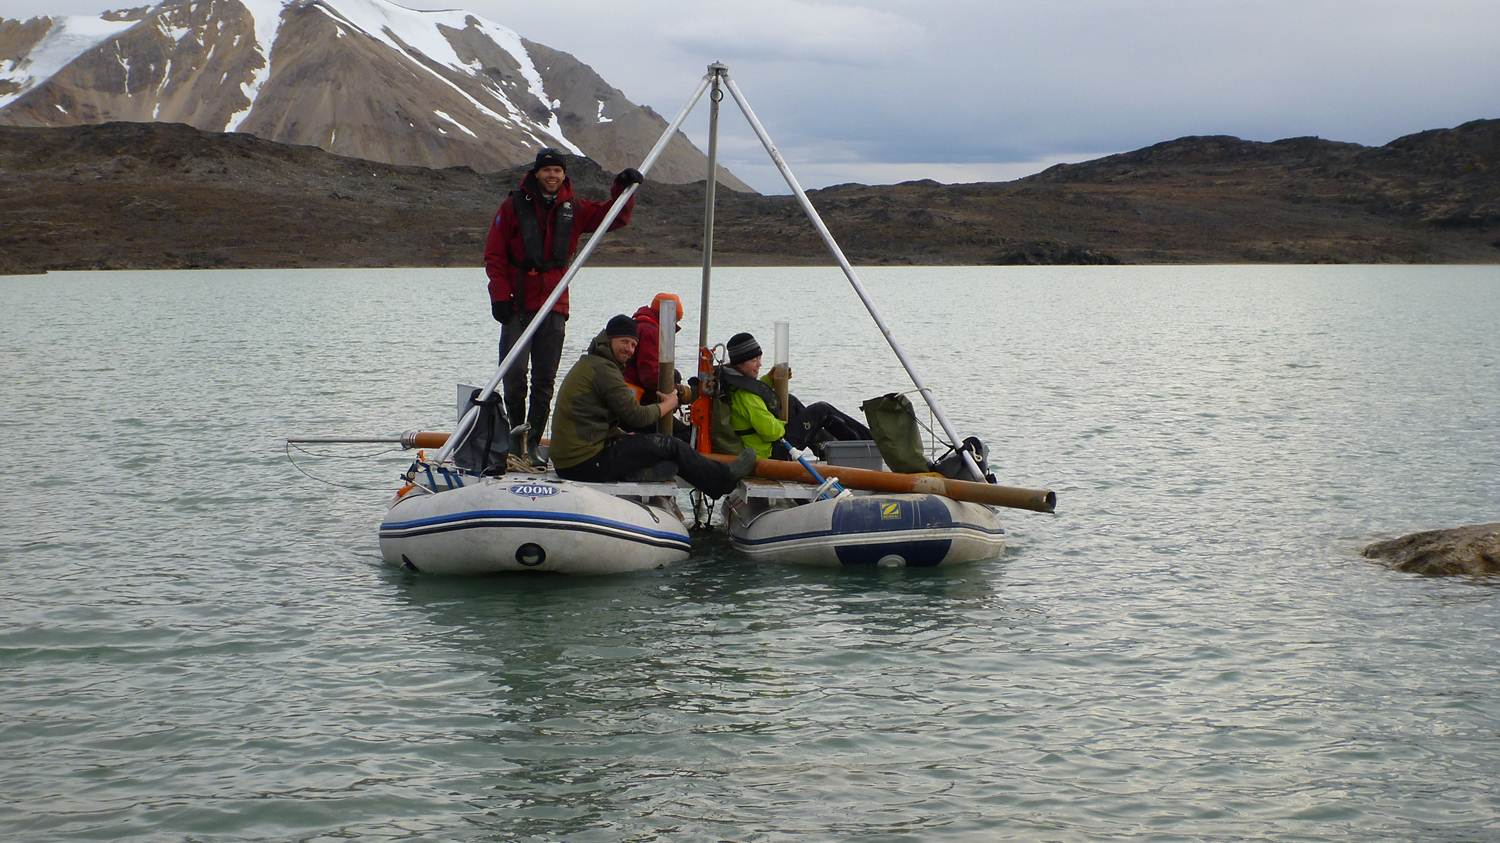 With a basic coring rig and two inflatable rafts lashed together to form a platform, scientists on Svalbard can extract sediments from the lakebed below